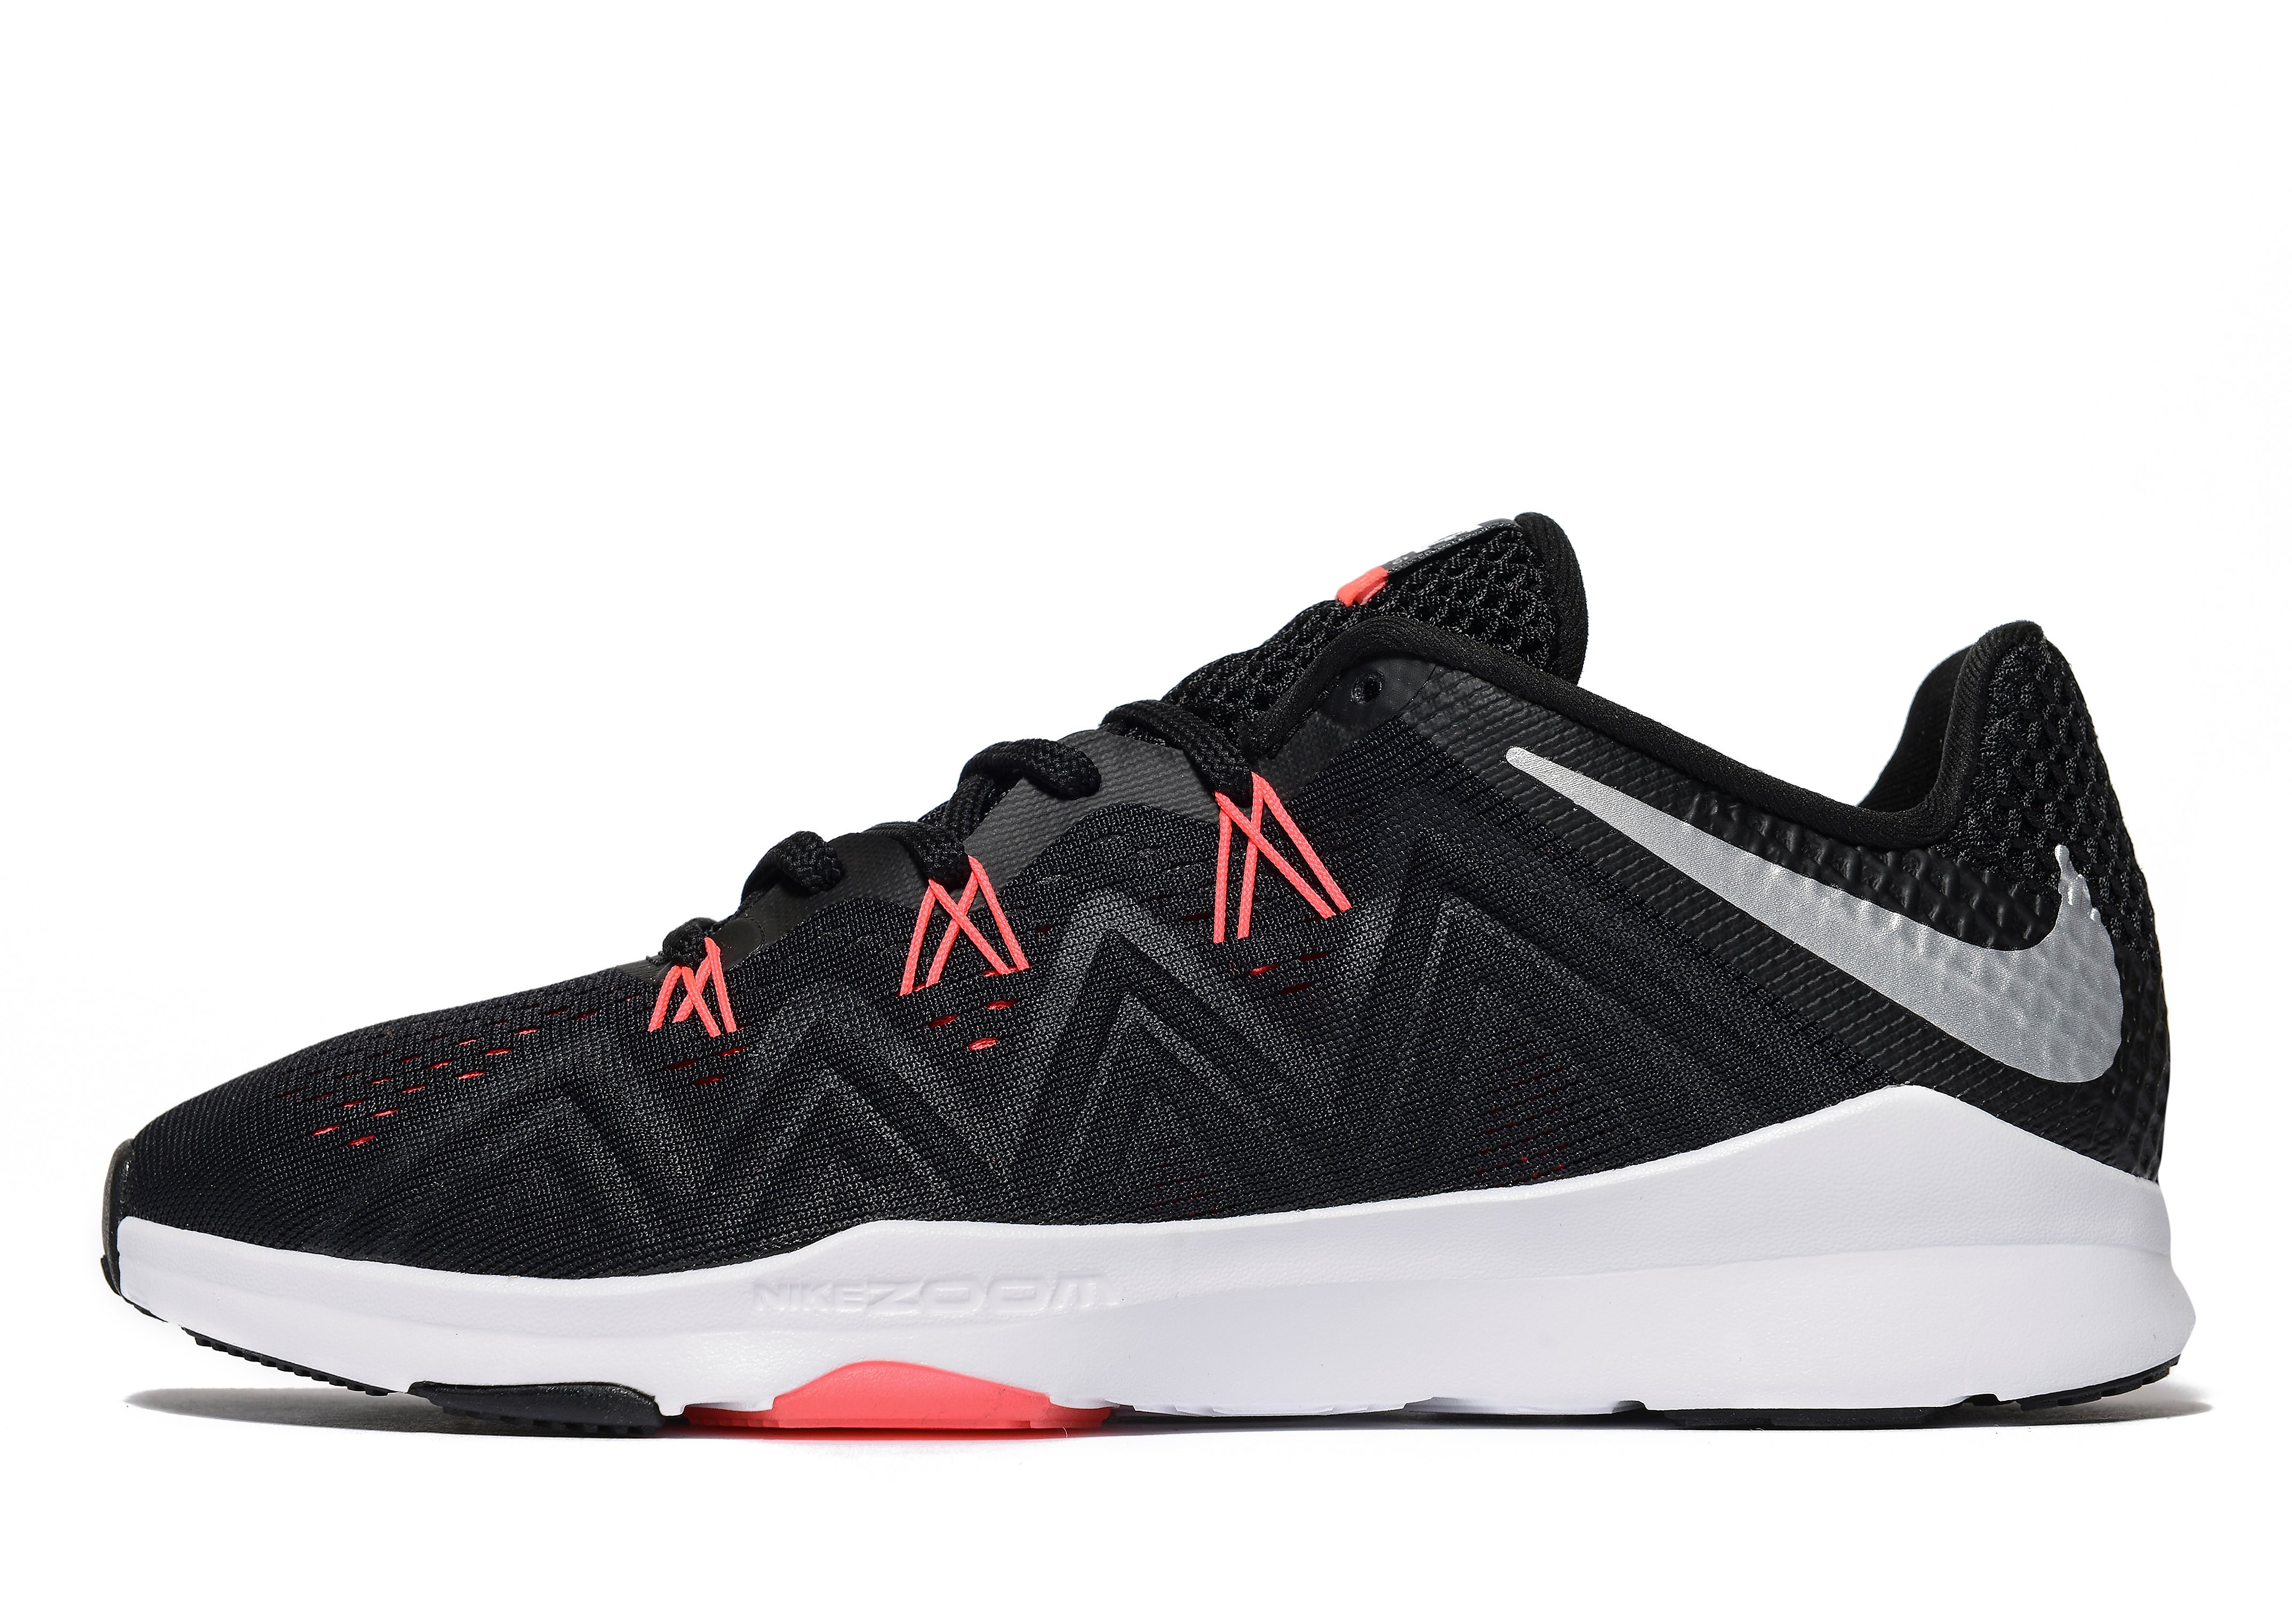 Nike Air Zoom Condition Women's